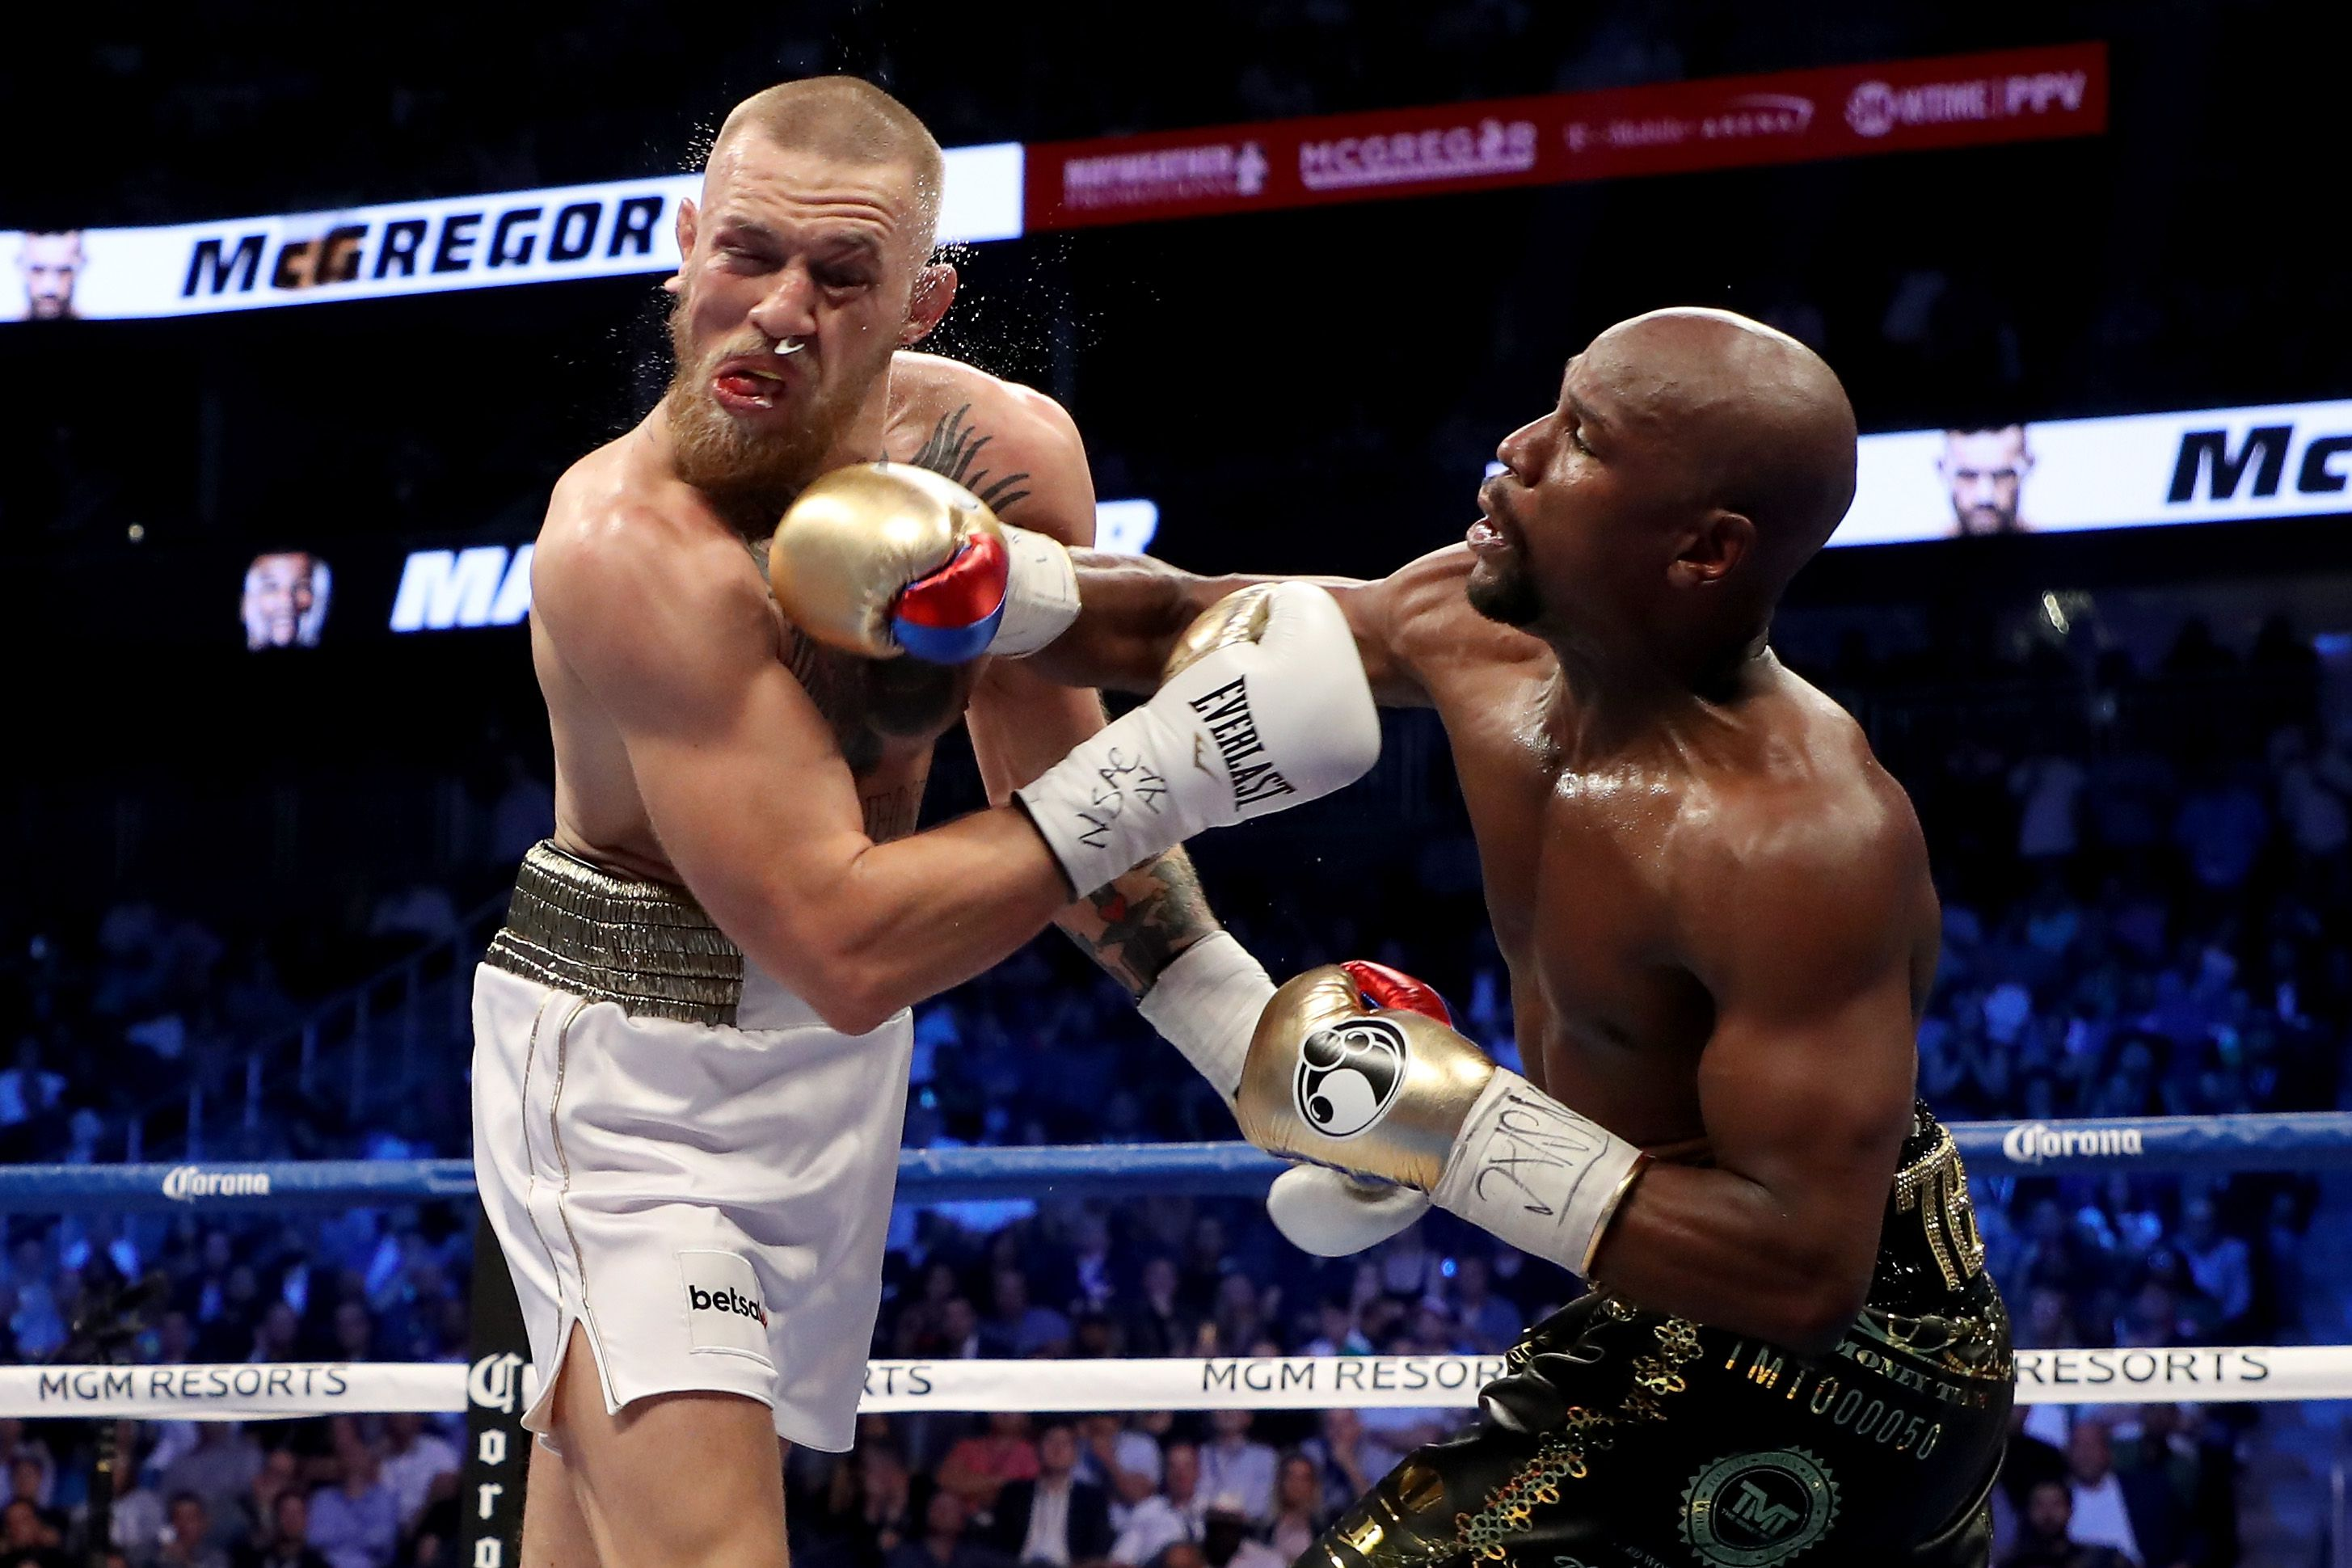 Floyd Mayweather punches Conor McGregor